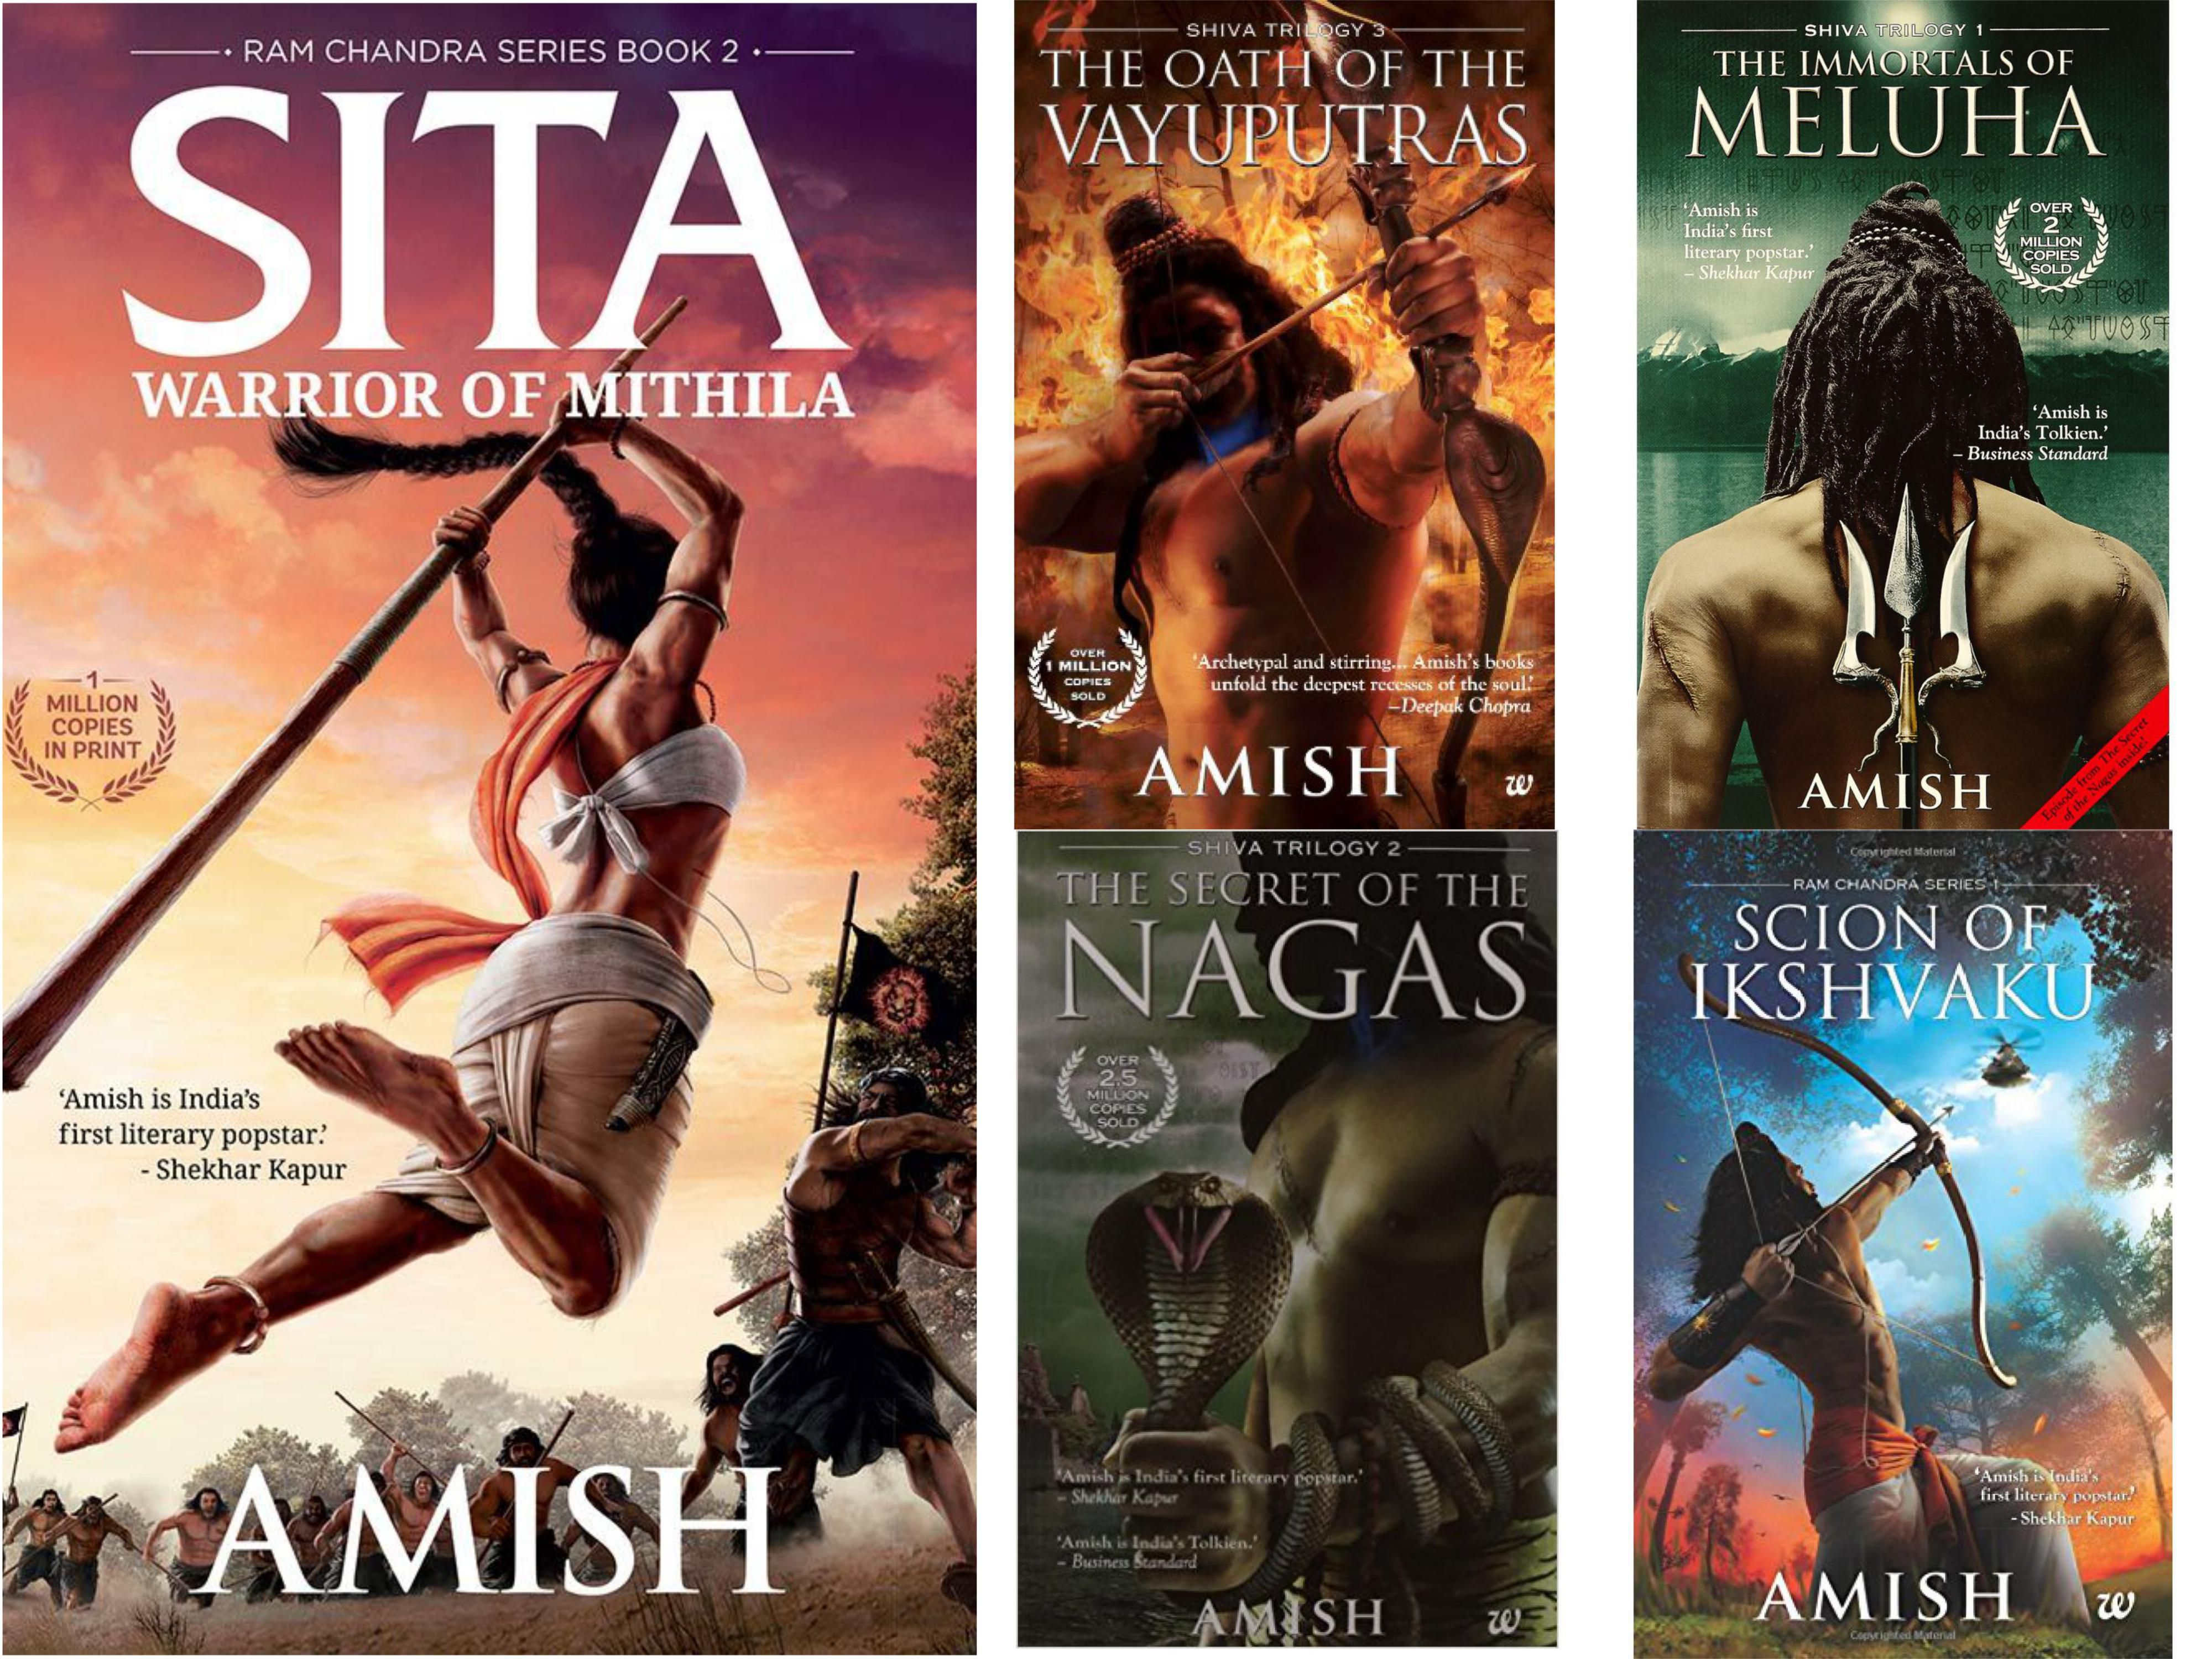 Sita Warrior of Mithila by Amish Tripathi Book 2 of Ram Chandra